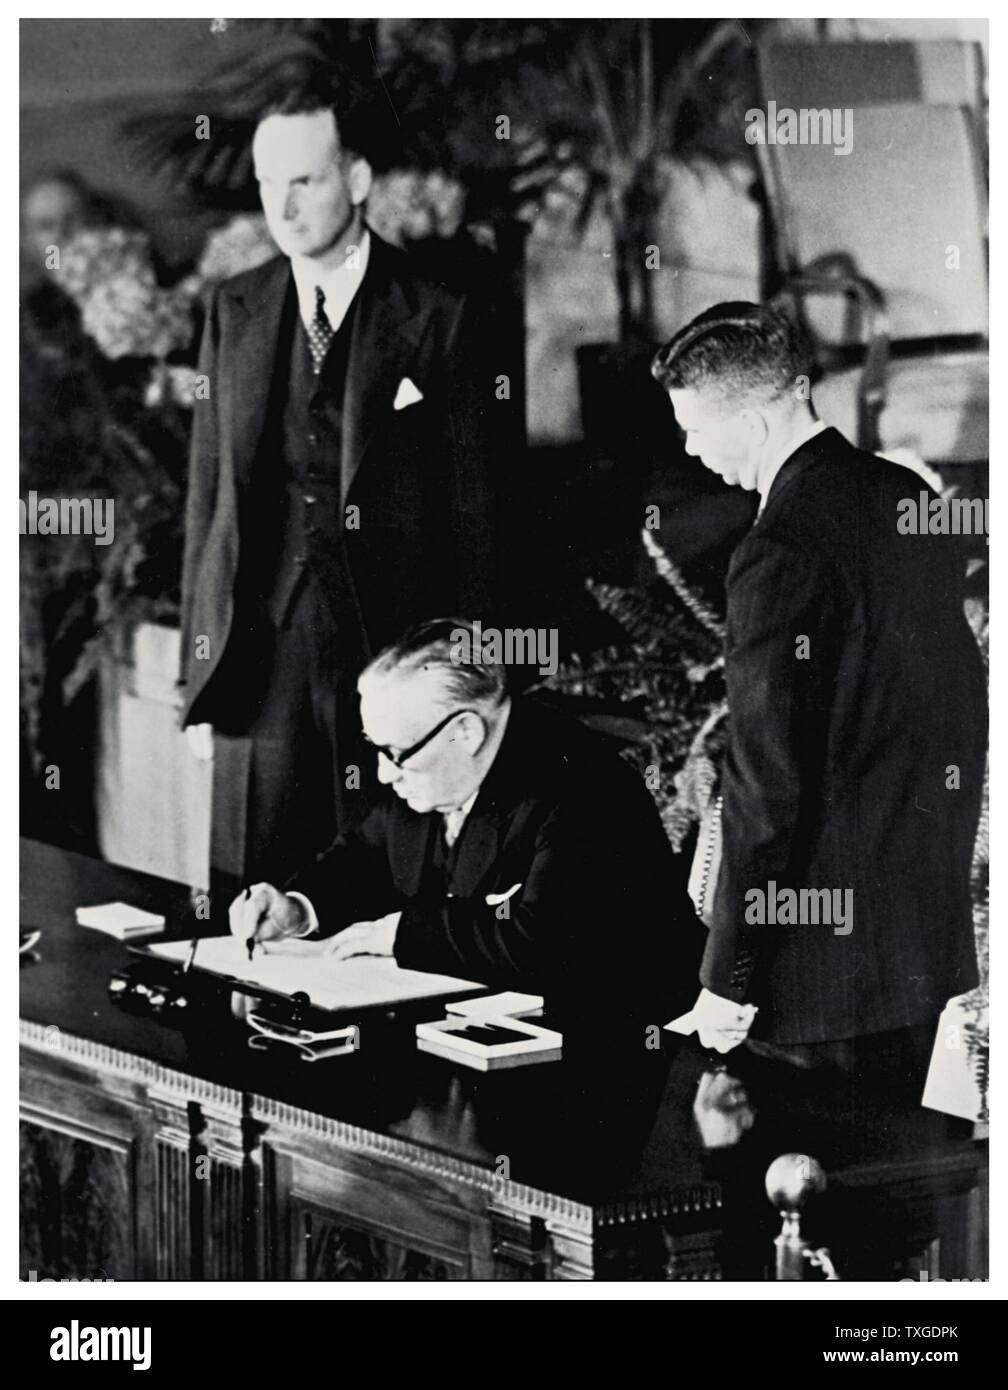 Photograph from the signing of the North Atlantic Treaty. The North Atlantic Treaty, signed in Washington, D.C. on 4 April 1949, is the treaty establishing the North Atlantic Treaty Organization (NATO). Stock Photo